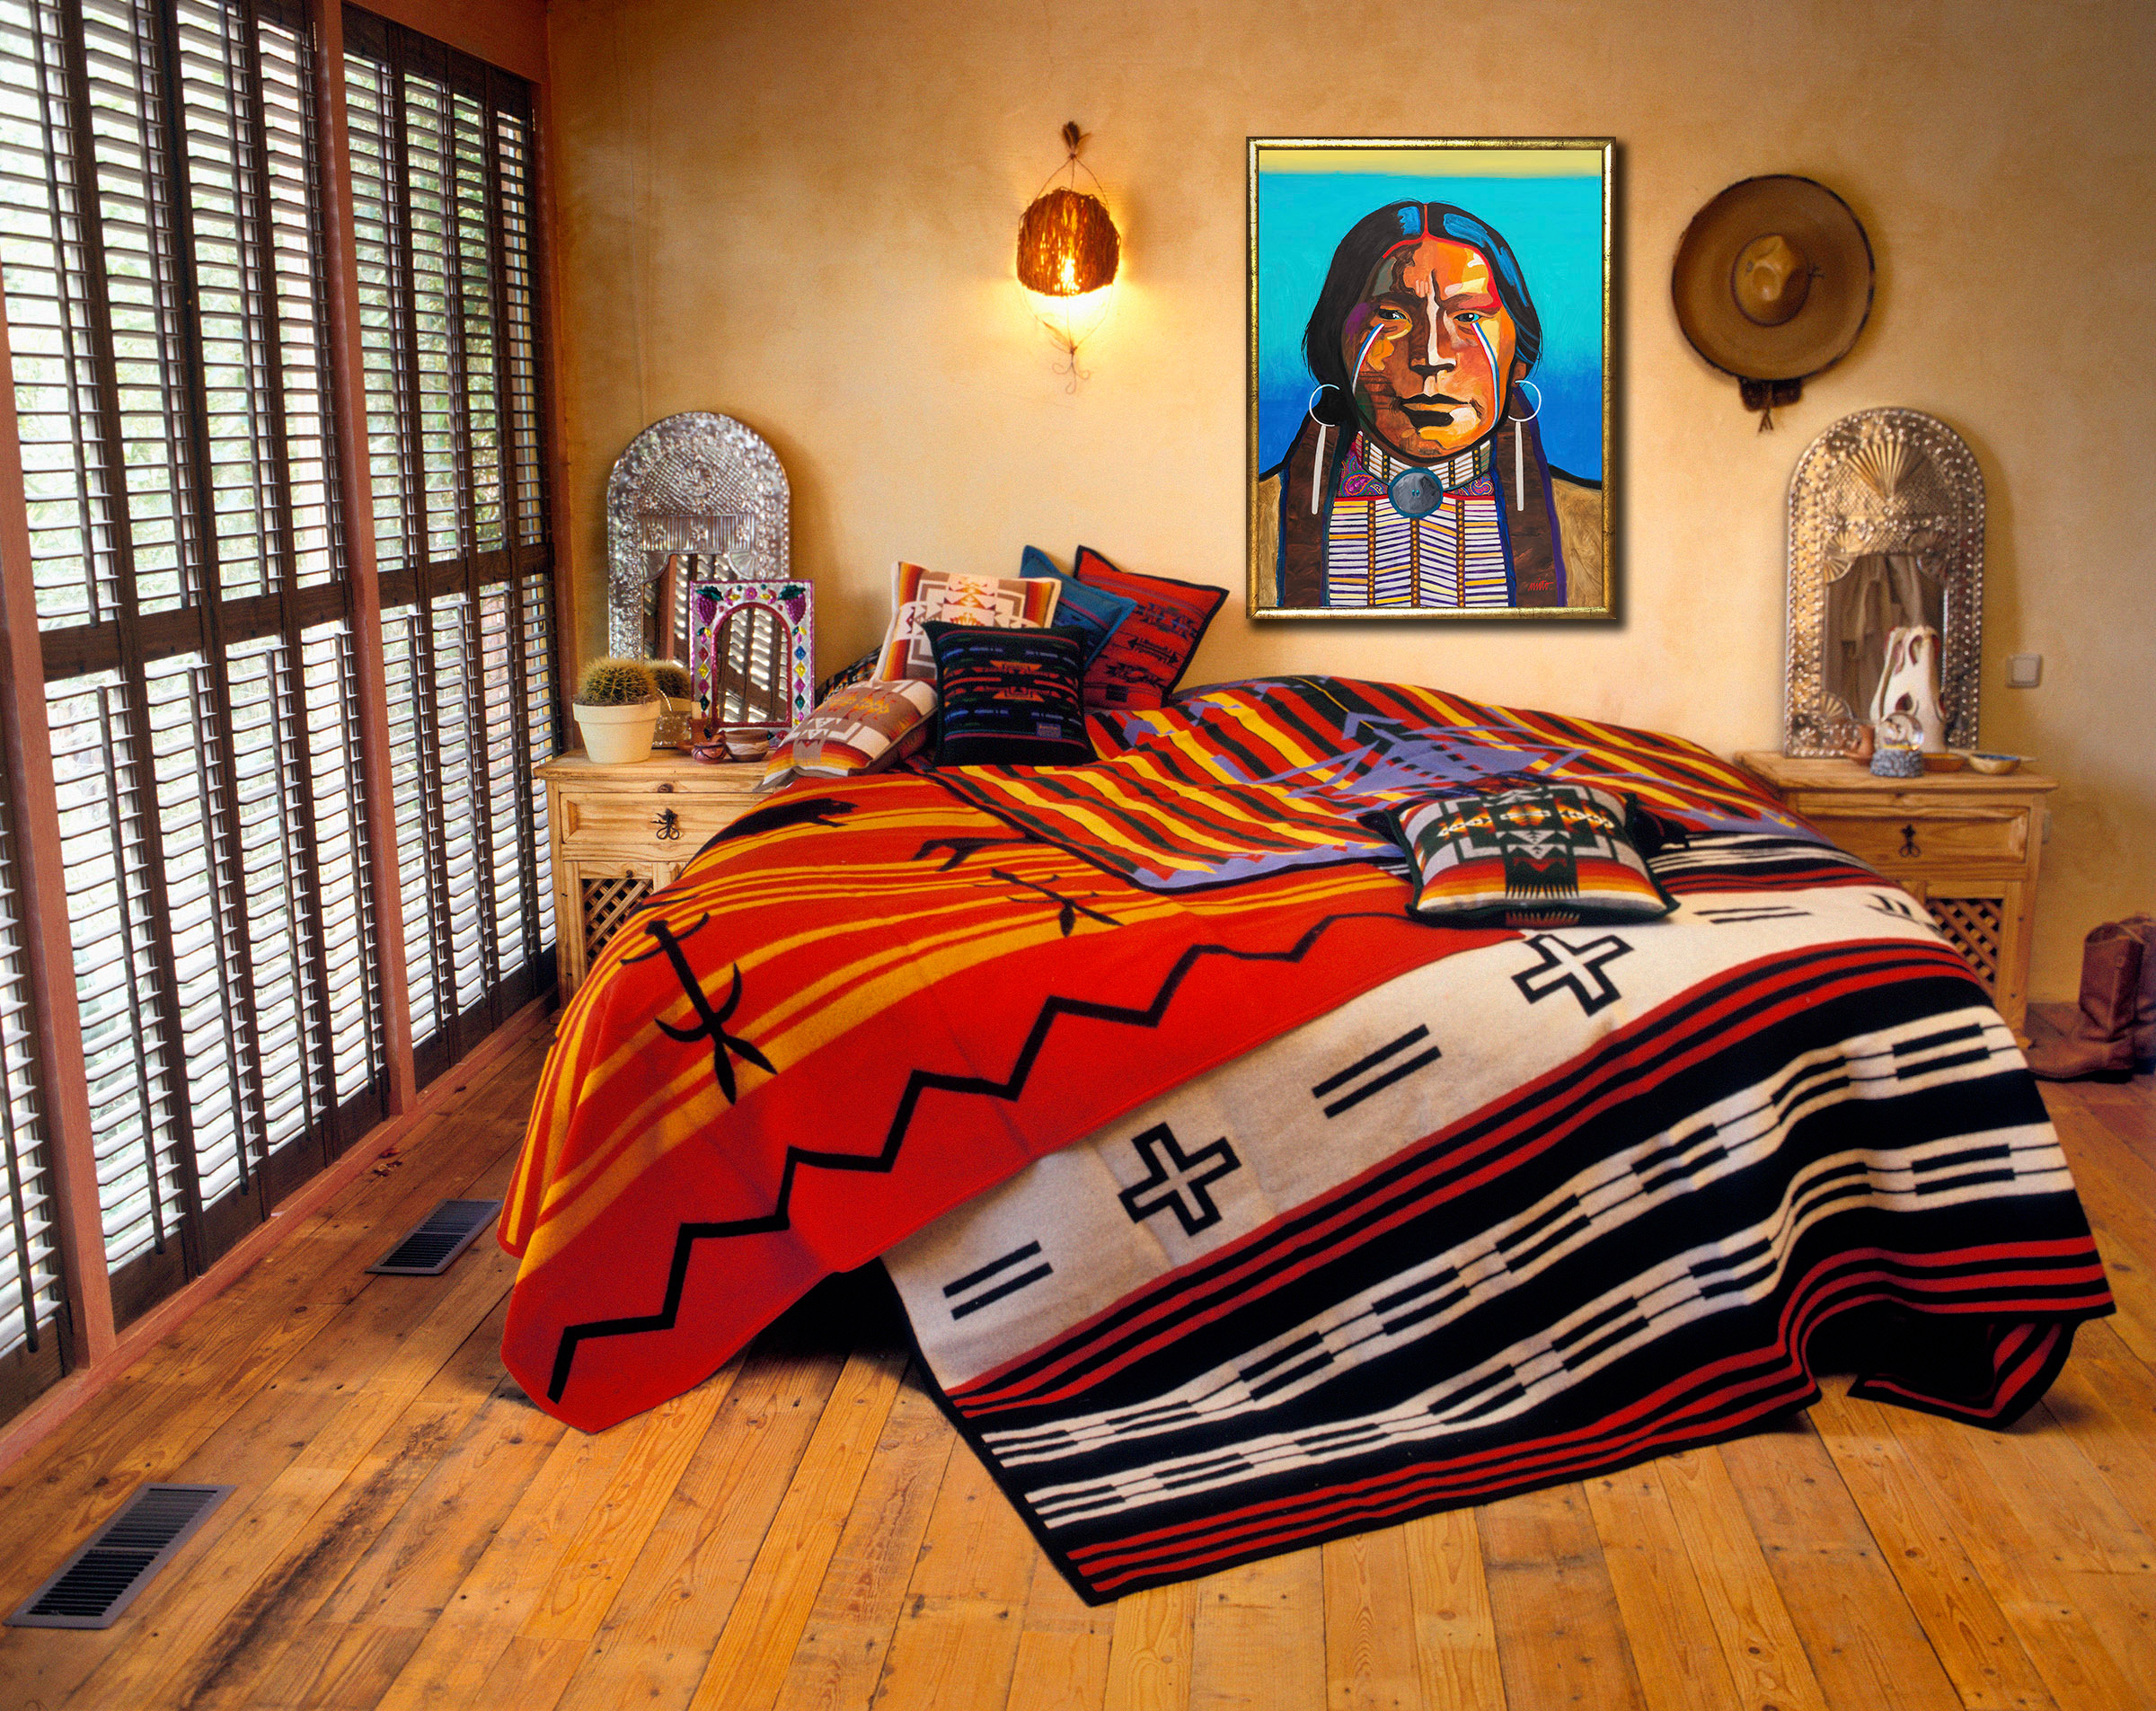 <div class='title'>           Jicarilla Apache, southwest design, santa fe interior,          </div>                 <div class='description'>           Southwest Interior design          </div>